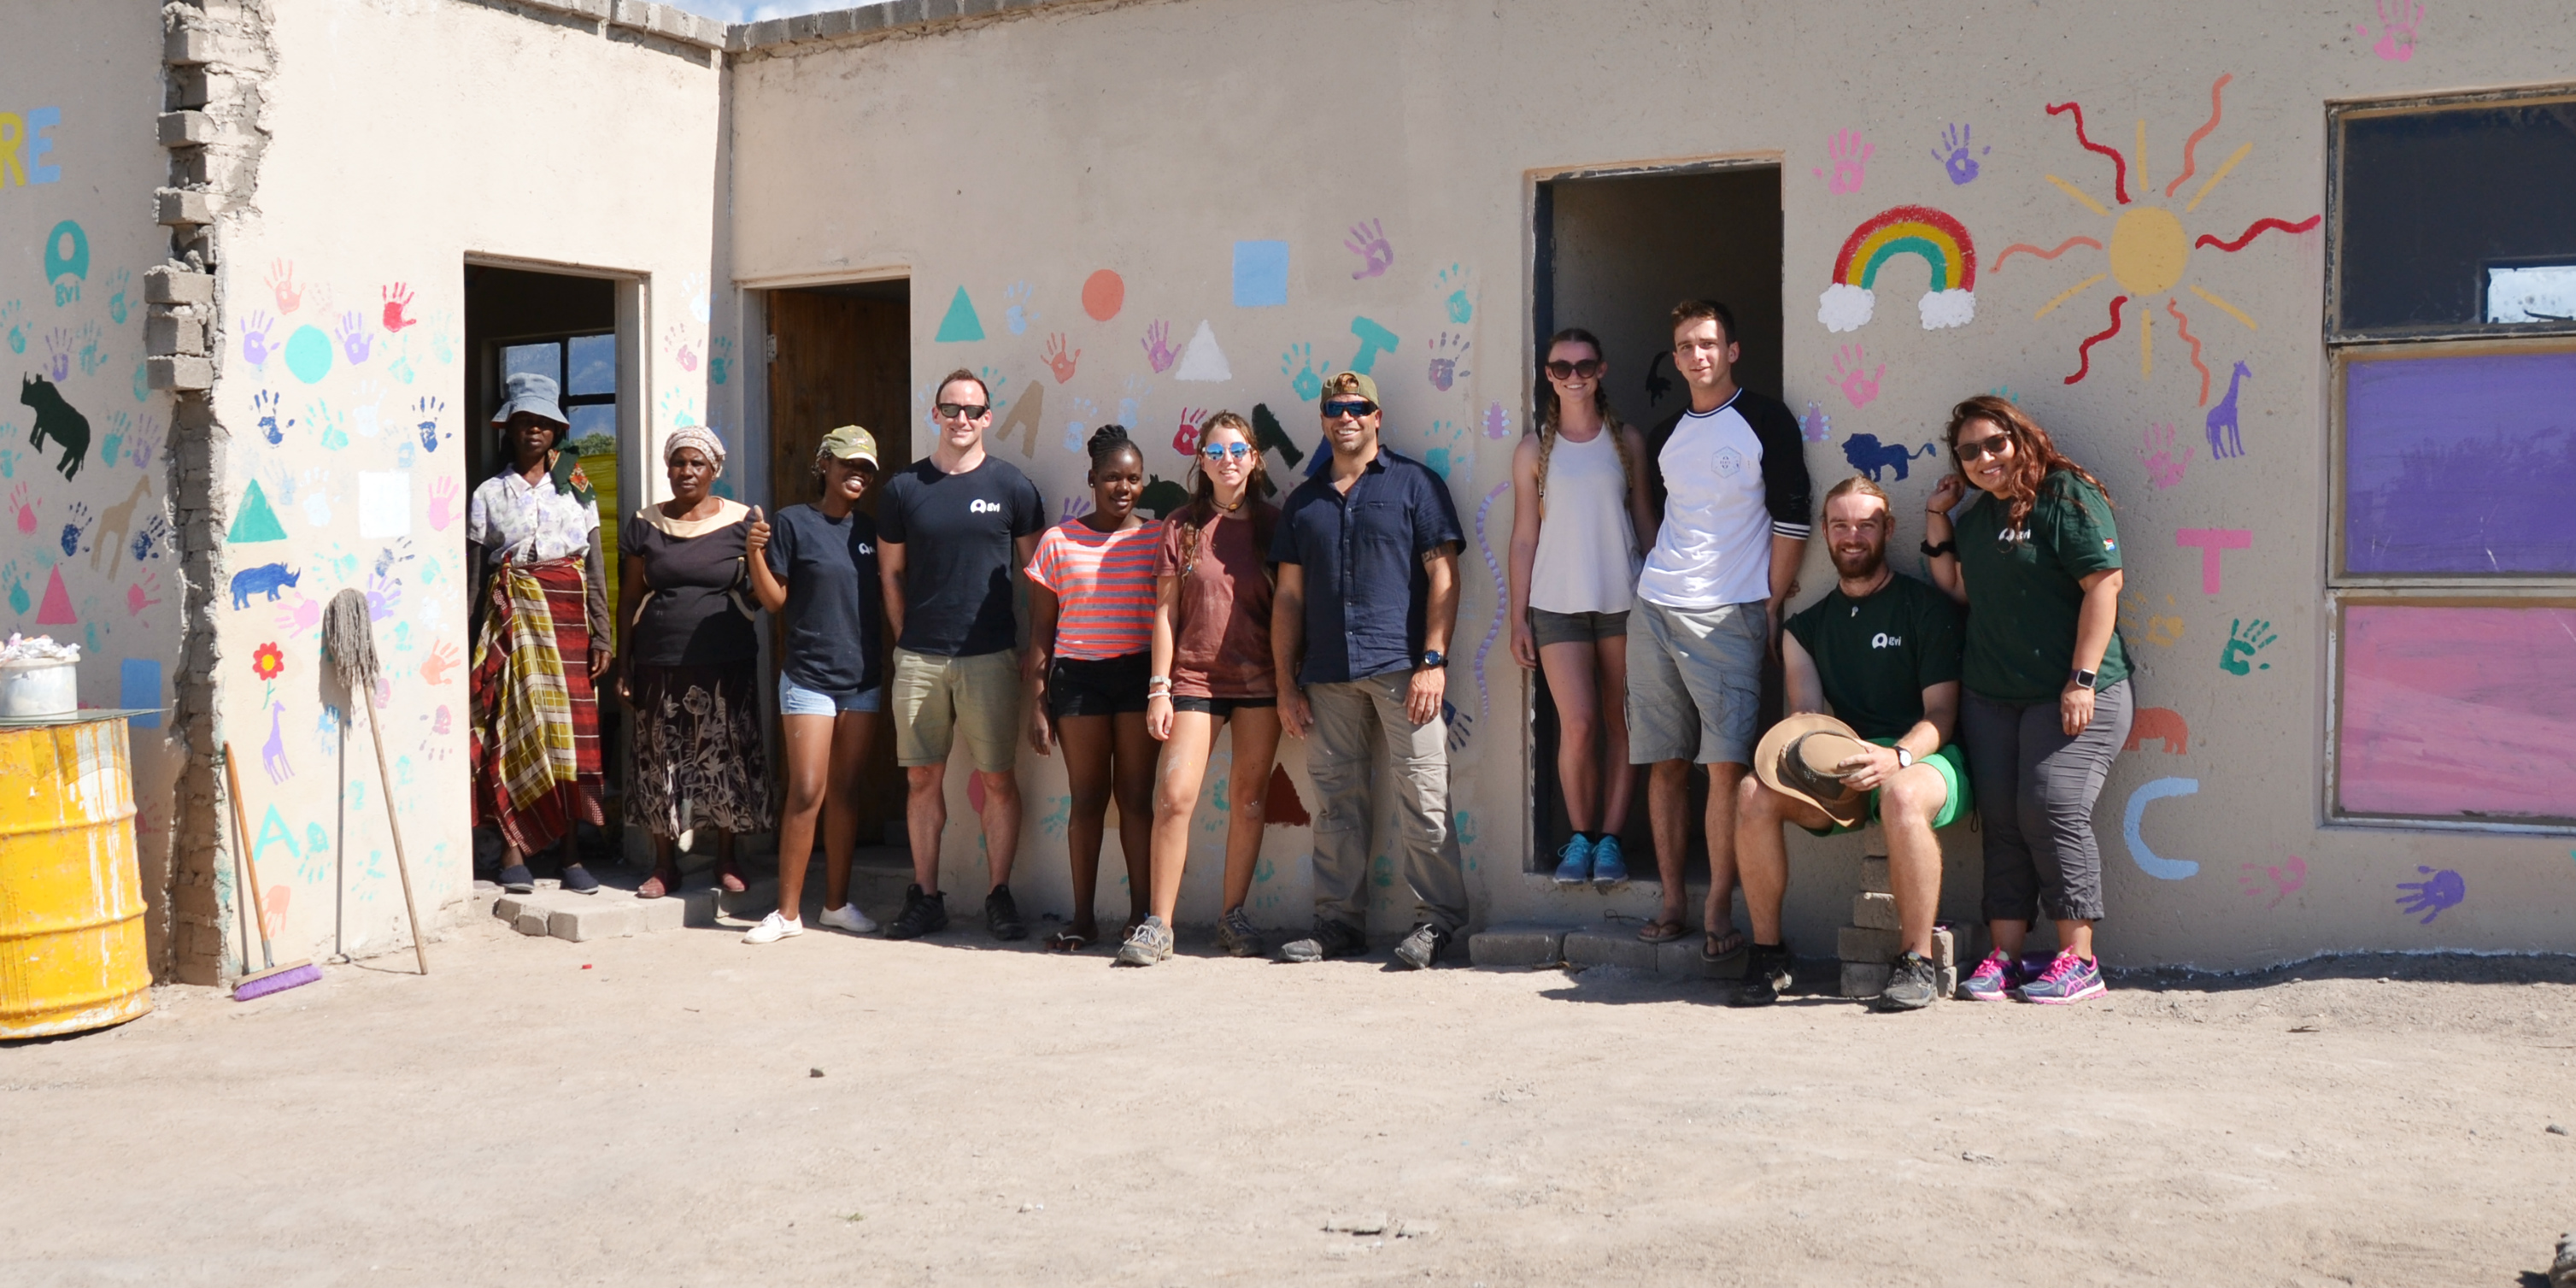 While volunteering in Africa with animals, GVI participants took time from their research to improve facilities at a local creche. Pictured: GVI participants and creche owners stand in front of the finished kitchen.